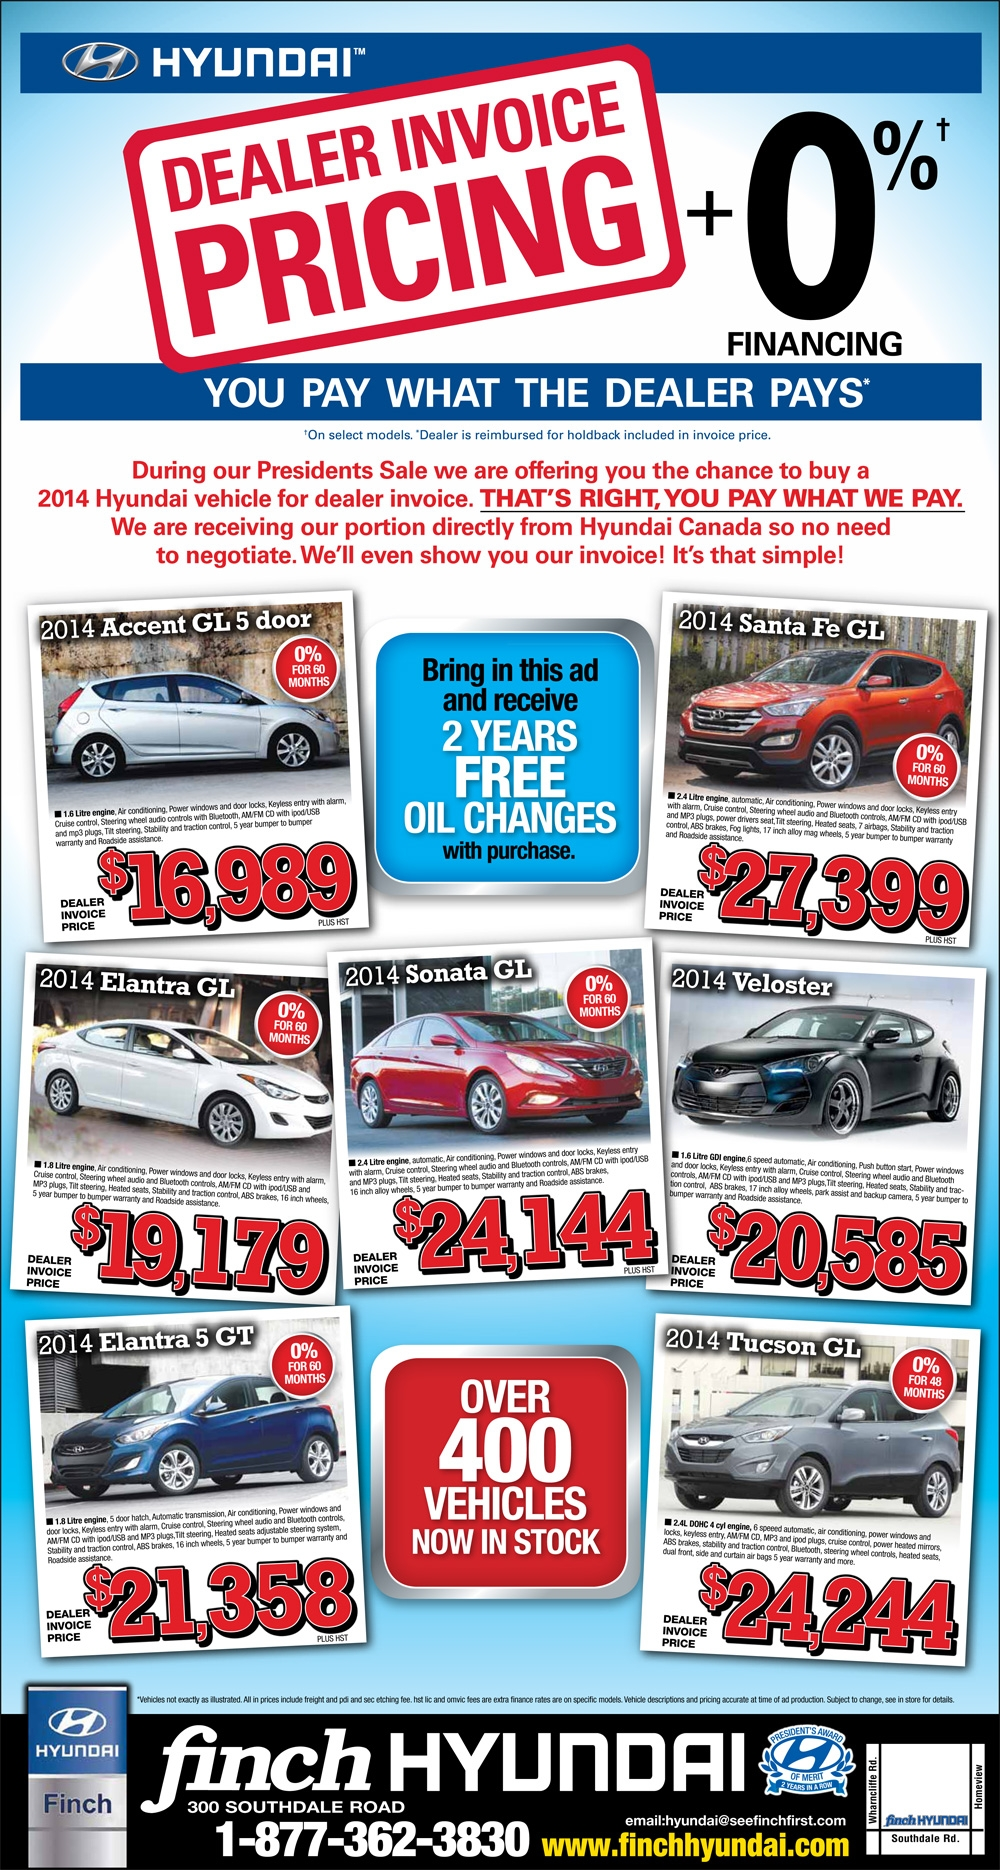 get dealer invoice pricing during the finch hyundai presidents hyundai invoice prices